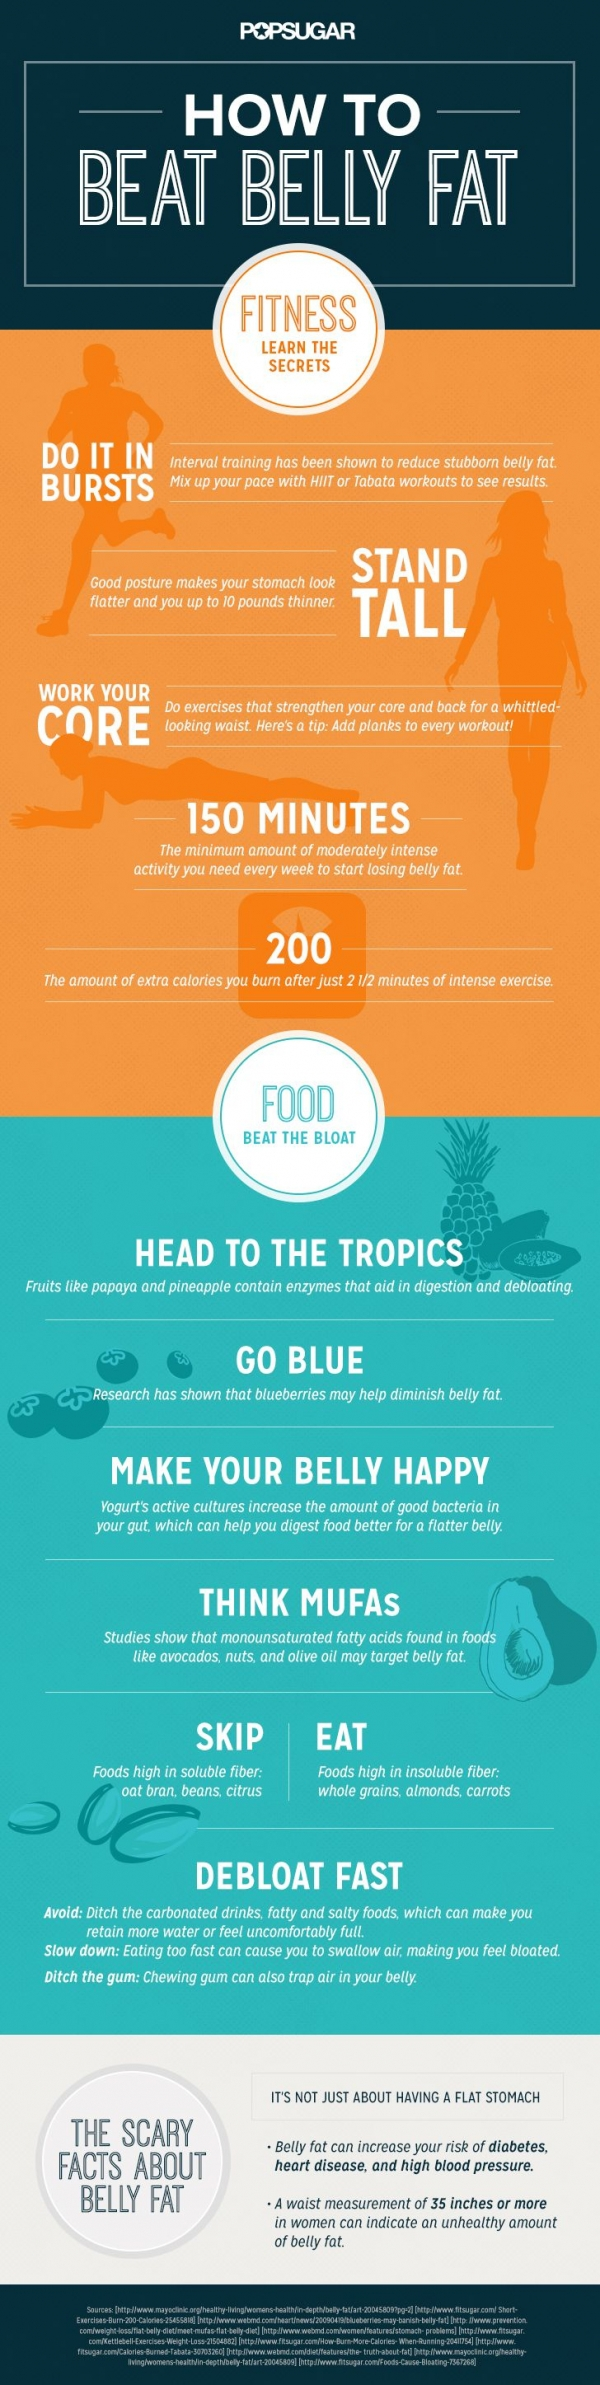 Beat Belly Fat!